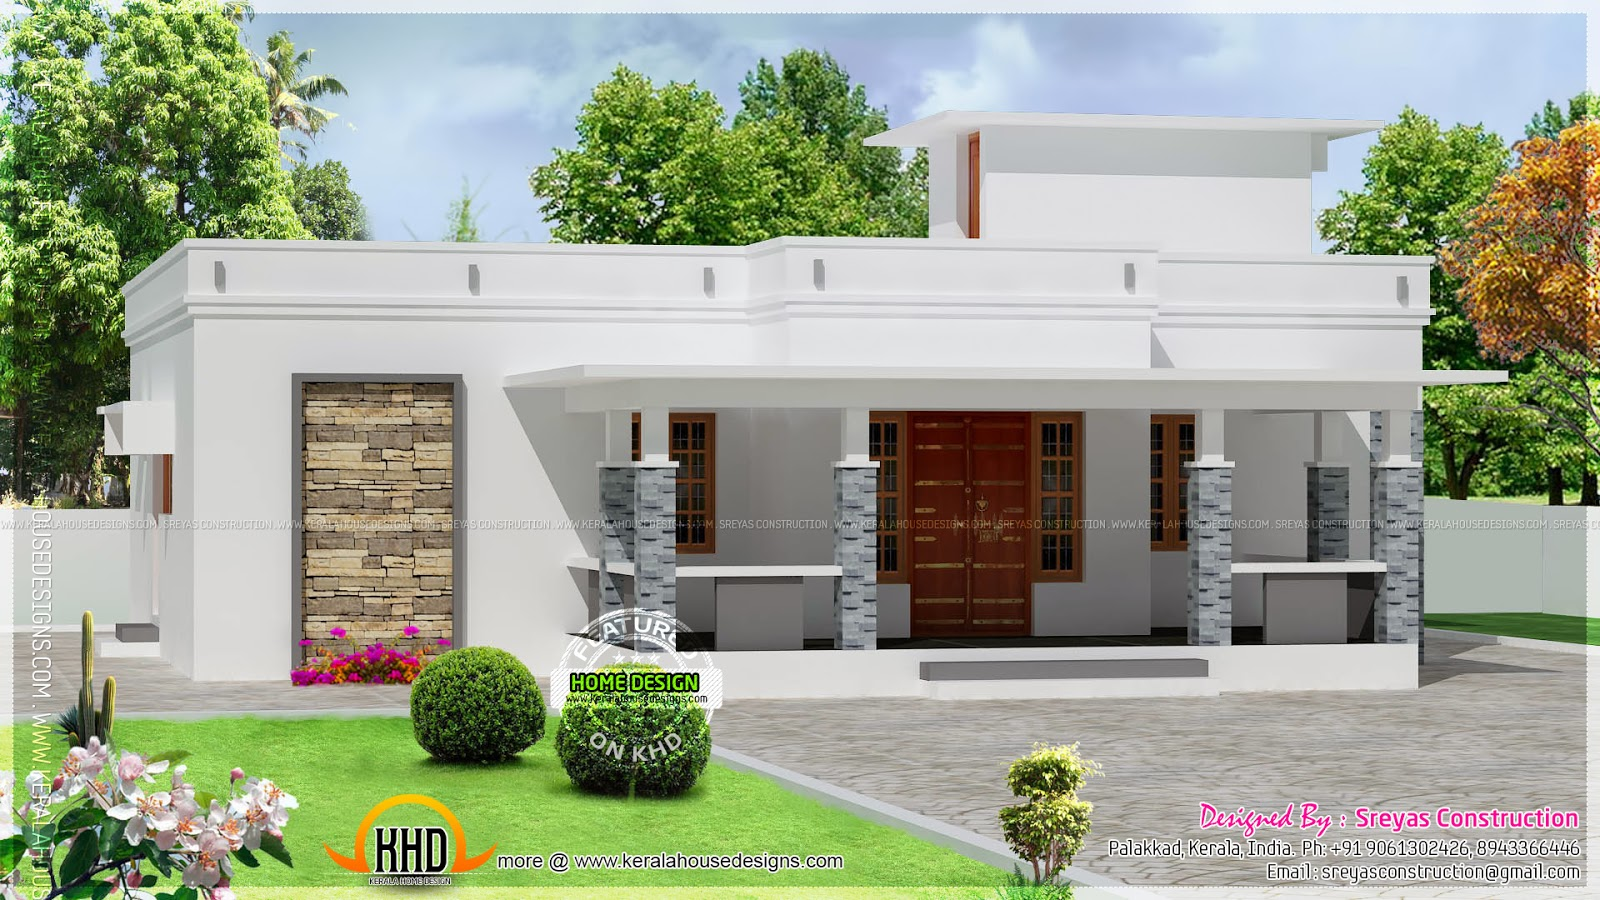 Ground Floor Building Elevation Images : Small house elevation with d rendering and drawing